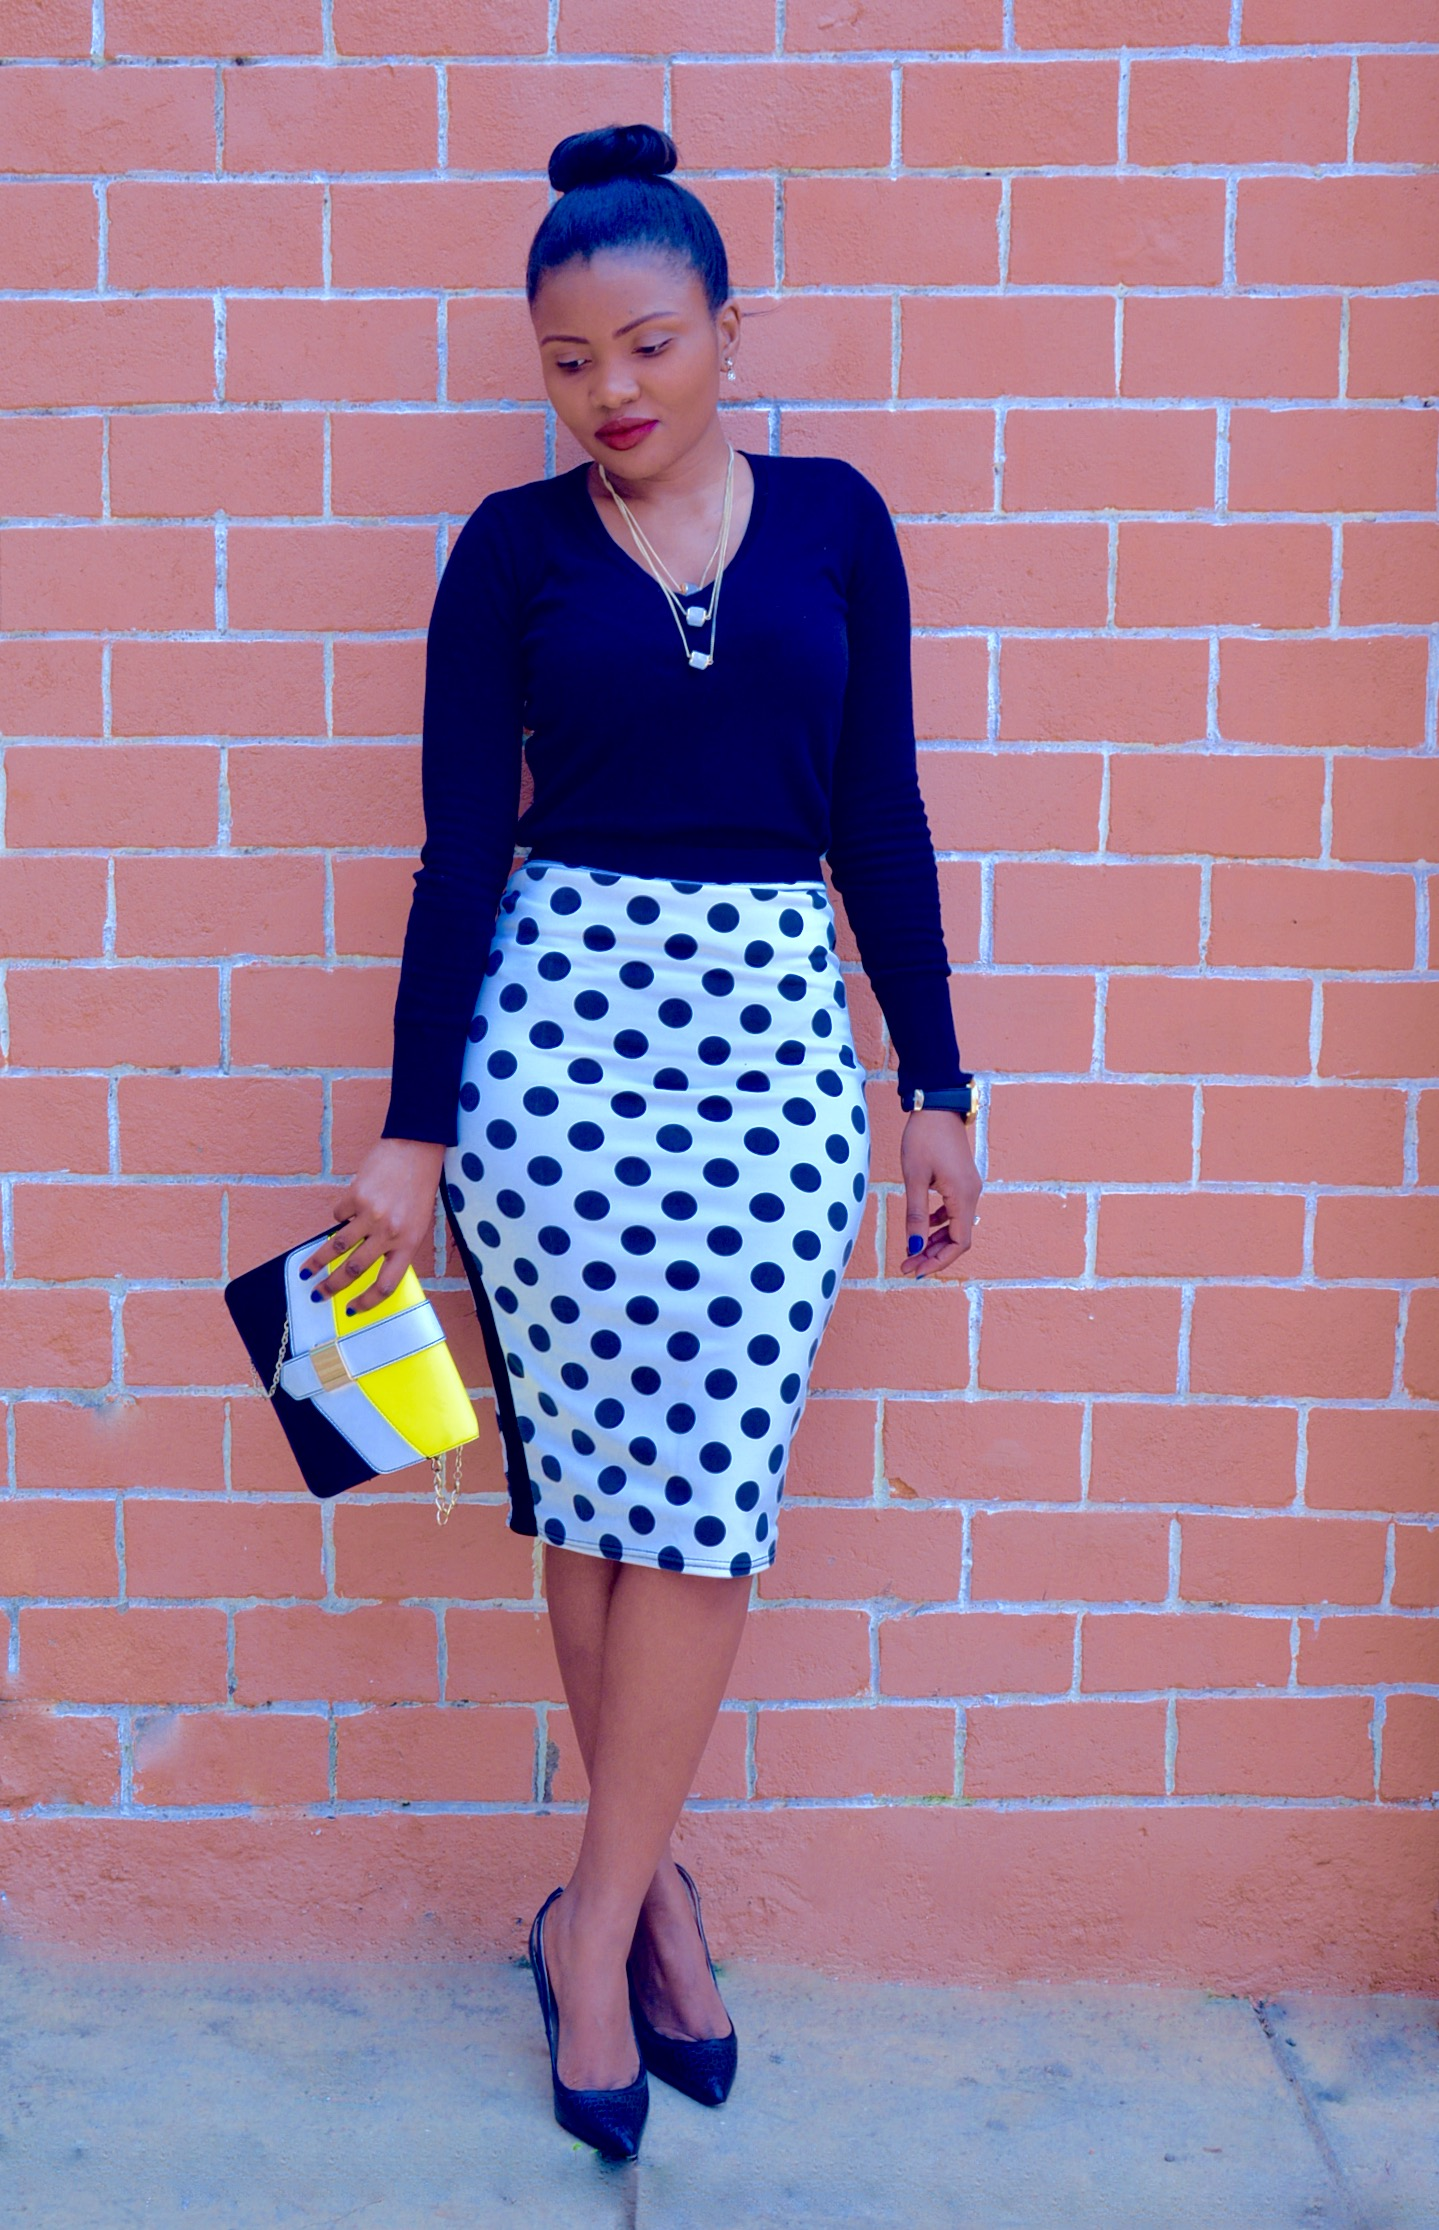 Polka Dot Skirt Outfit 1